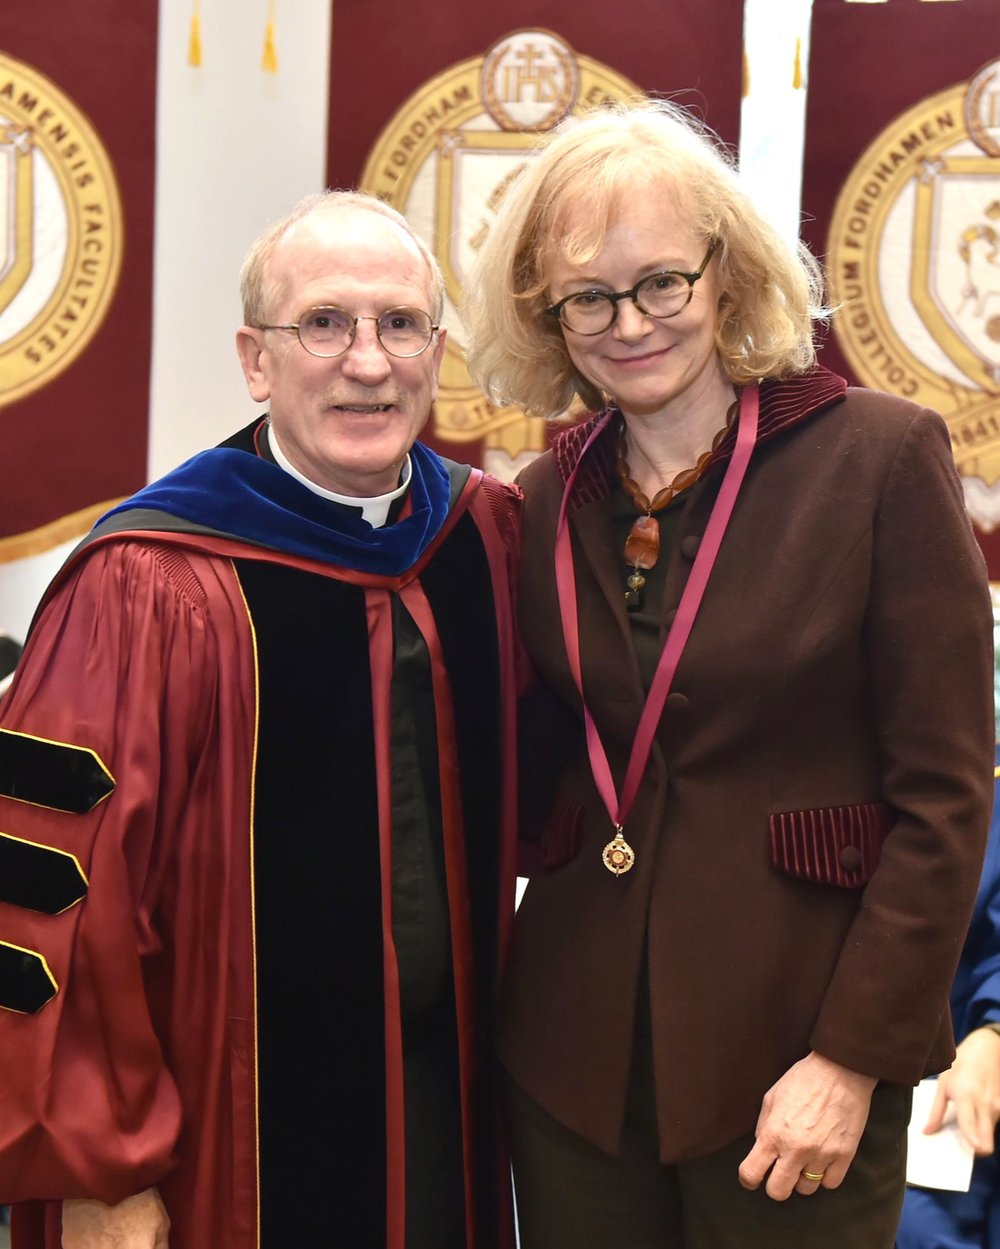 President McShane and Professor Bly